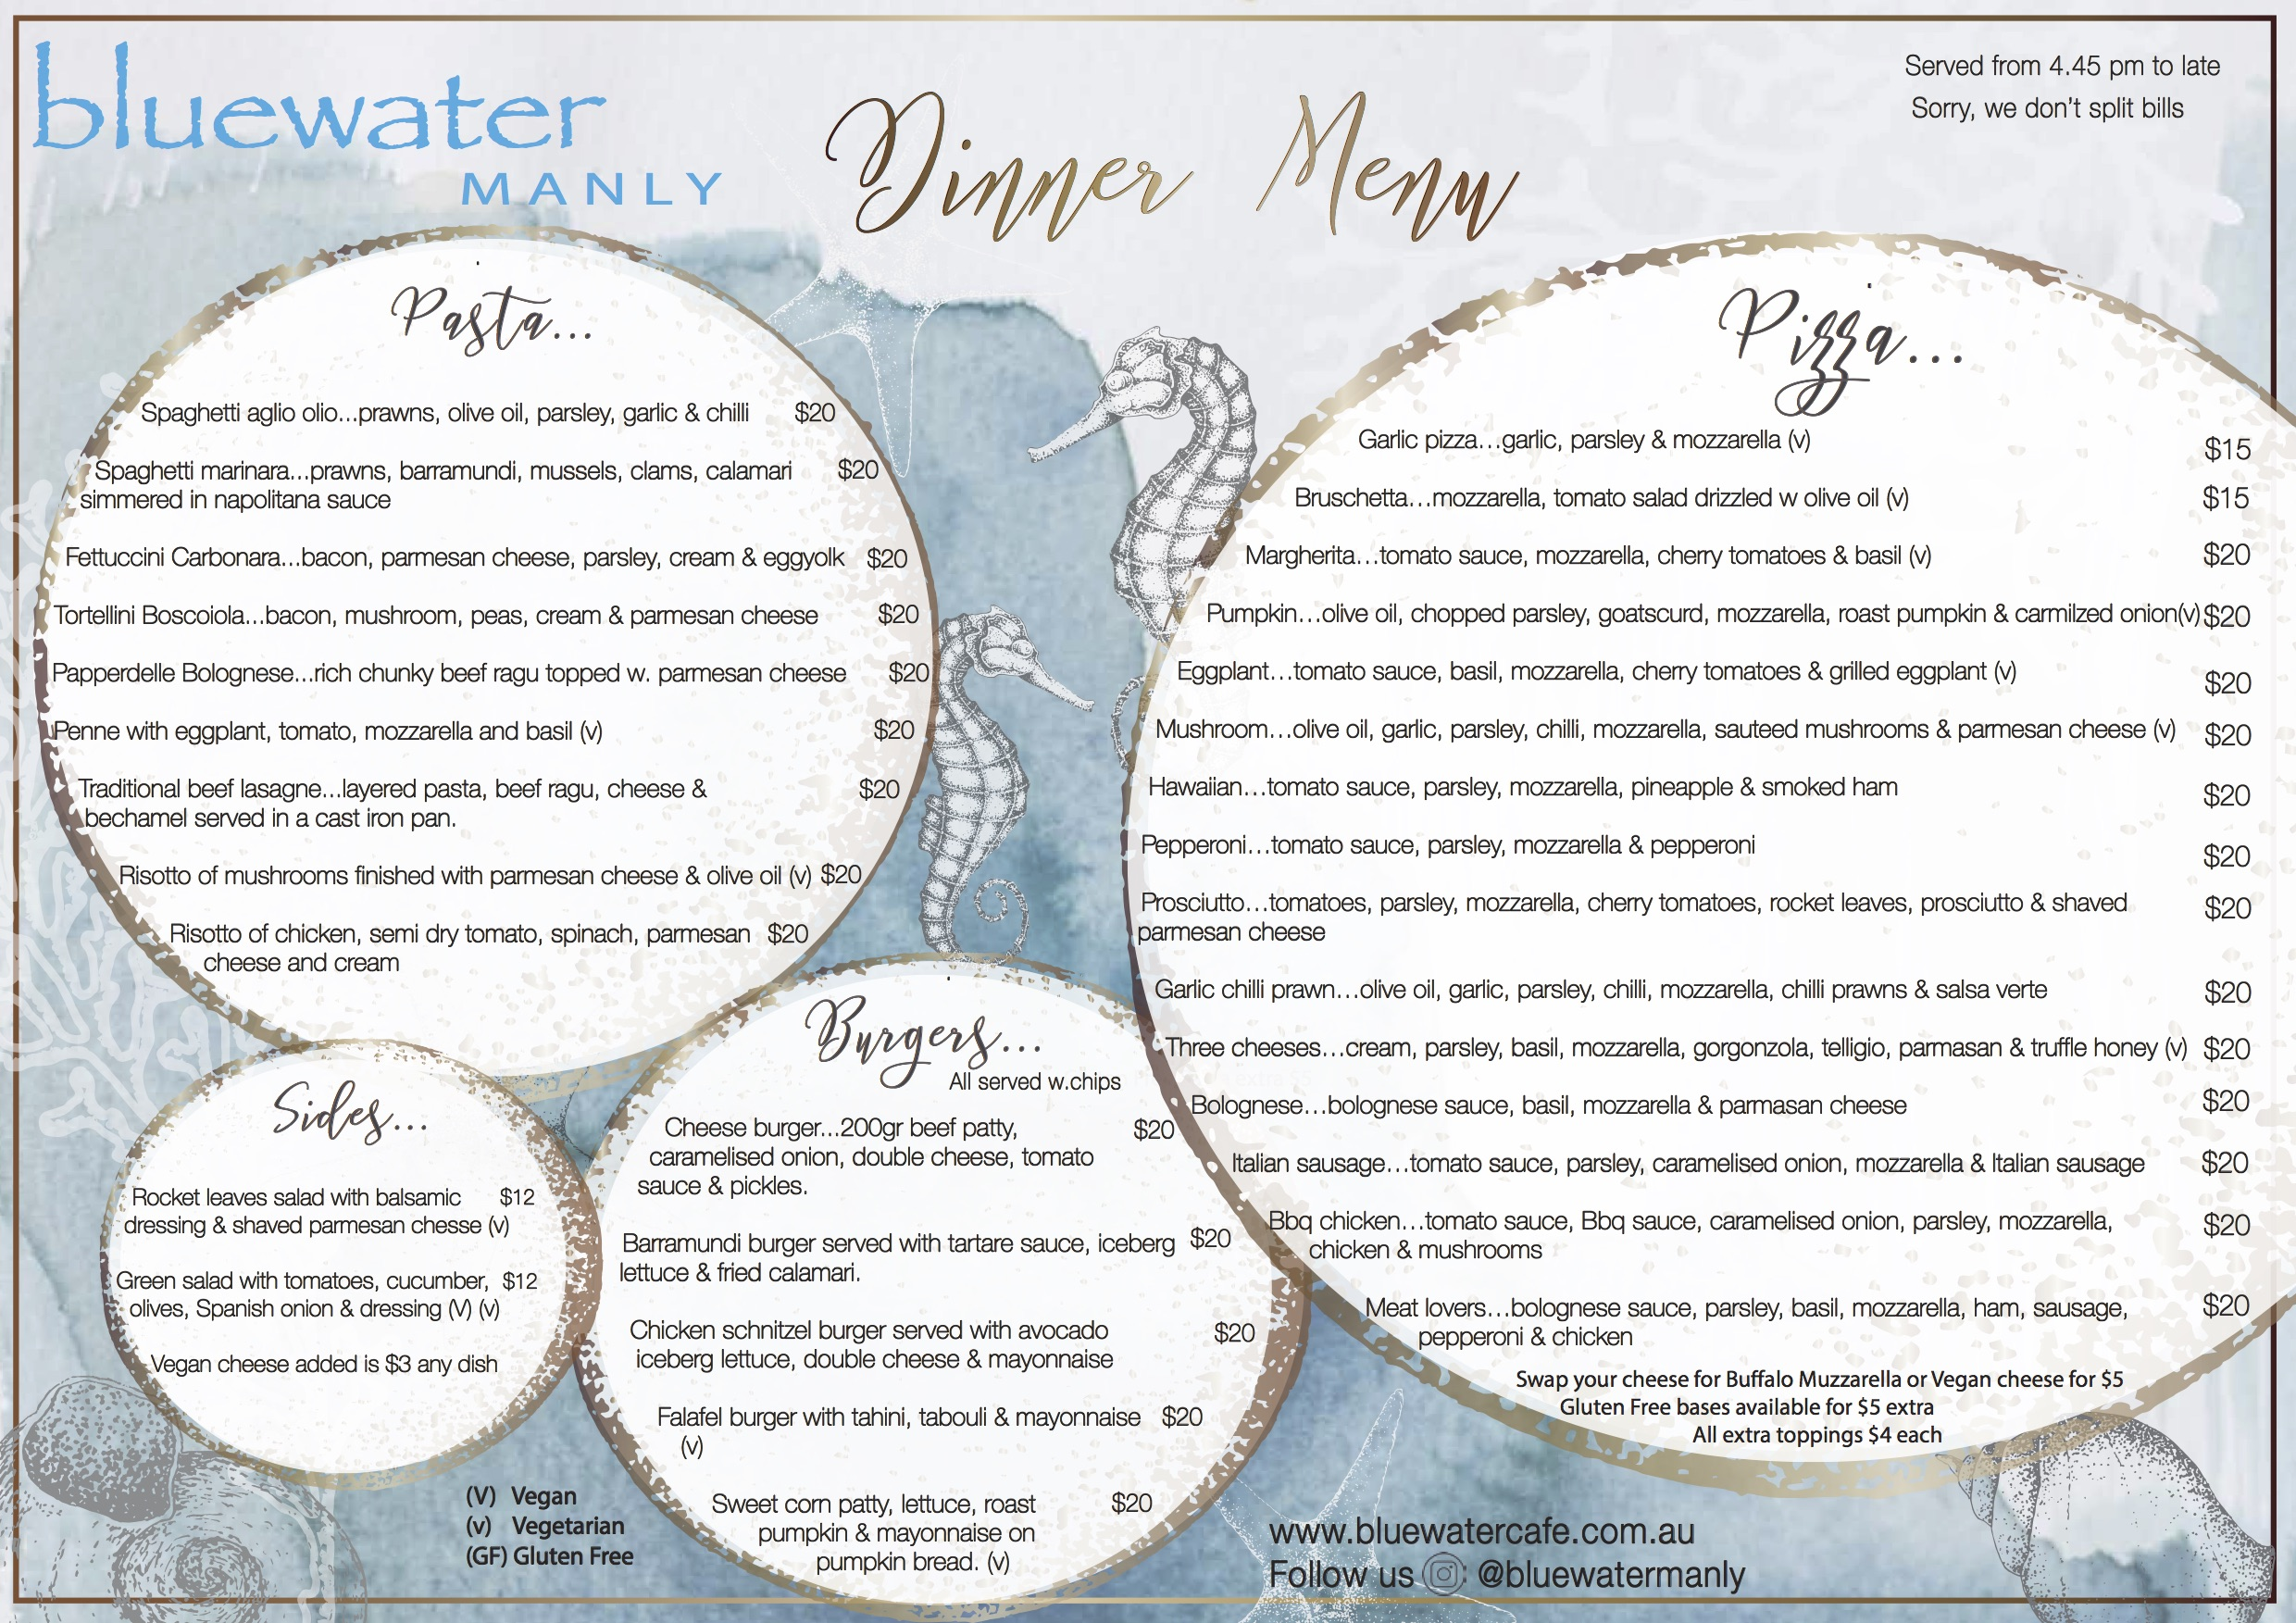 Bluewater Cafe Manly Dinner Menu